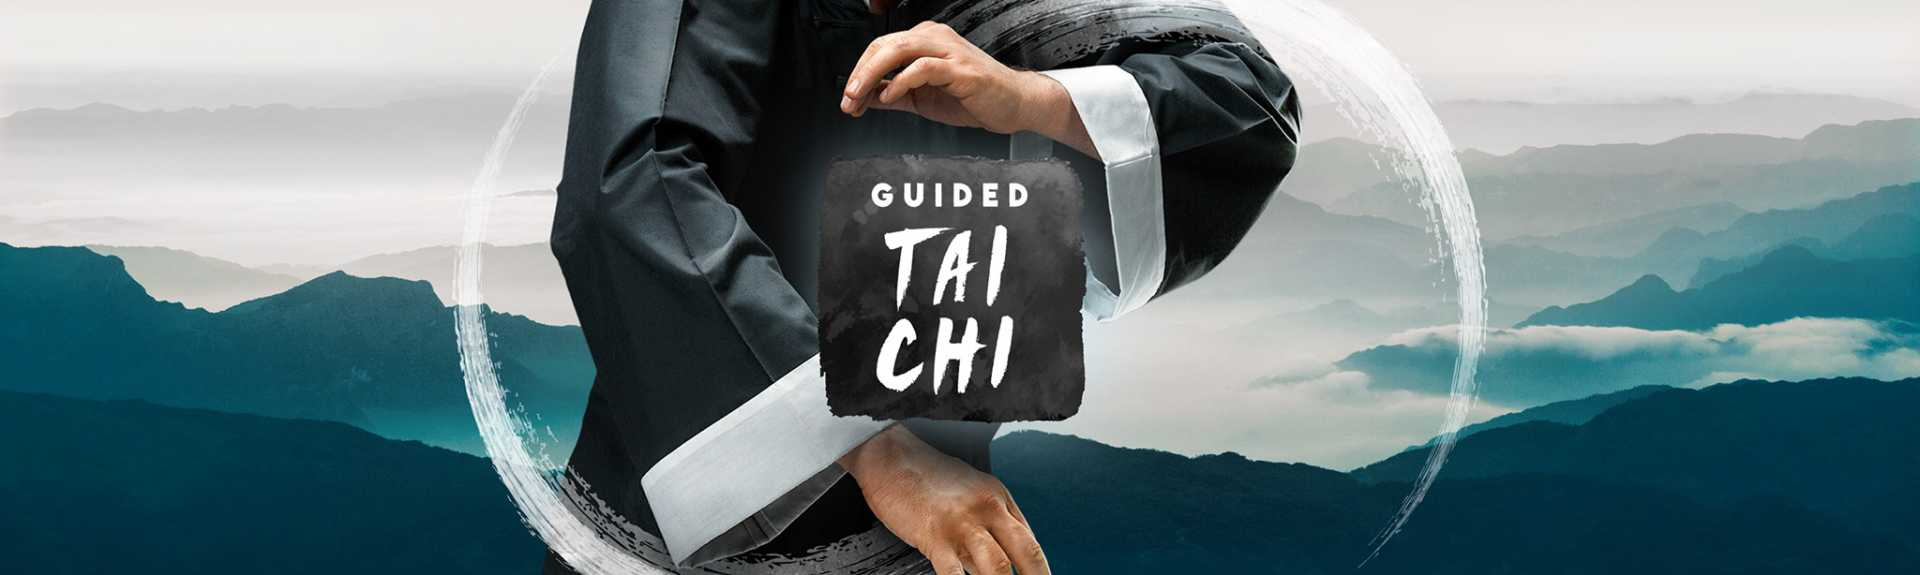 Guided Tai Chi